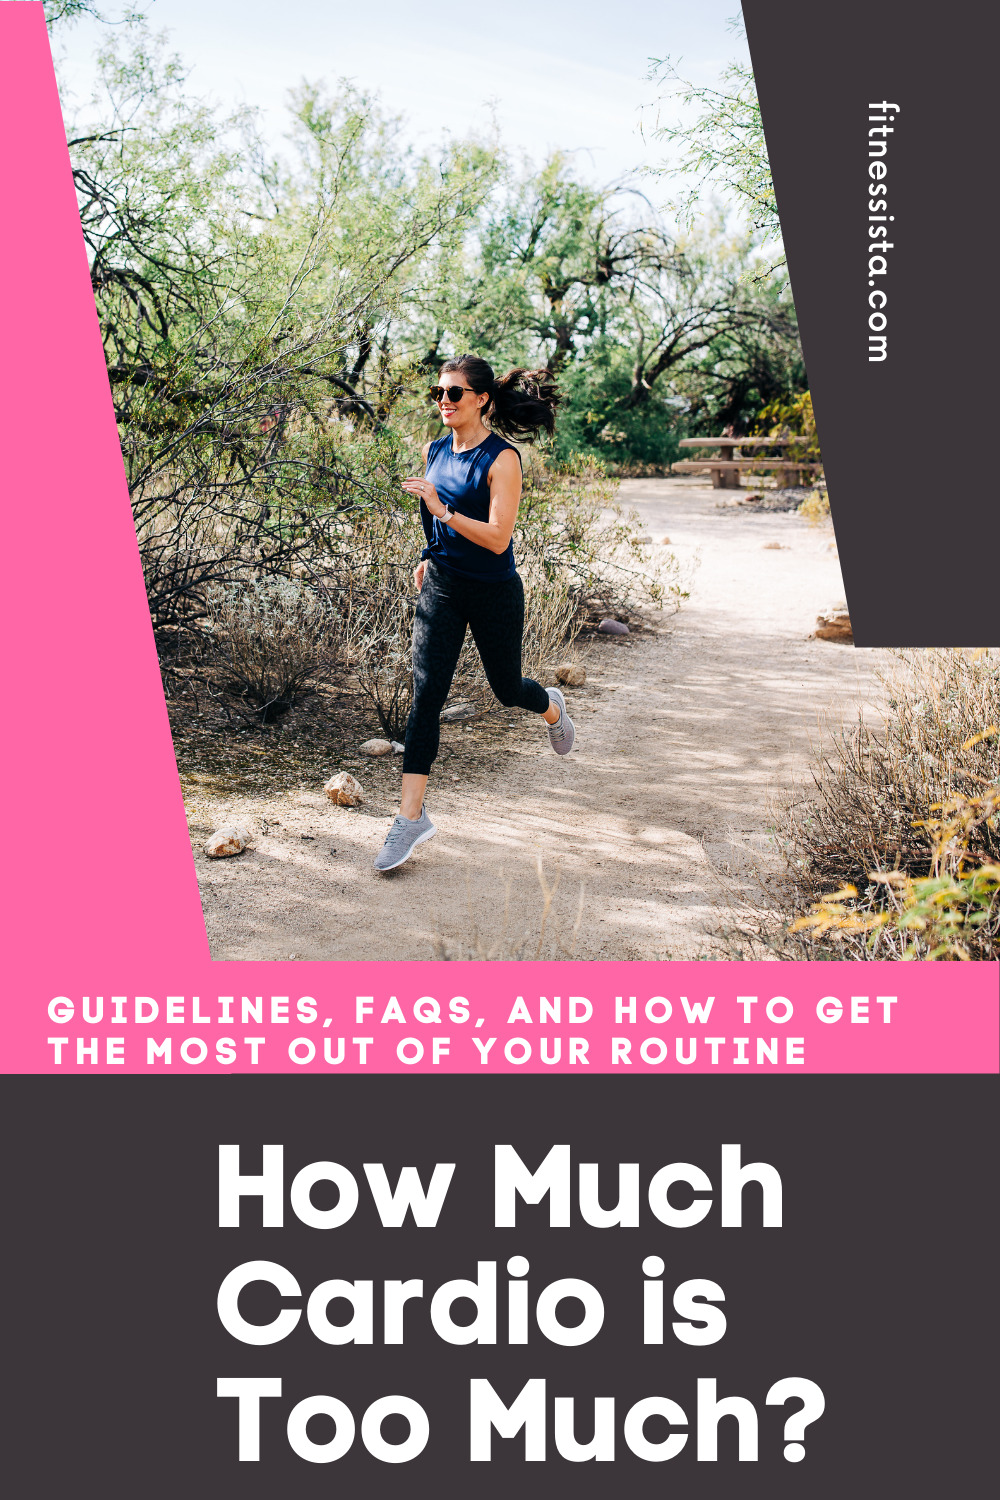 How Much Cardio Is Too Much? (A Clear Answer)